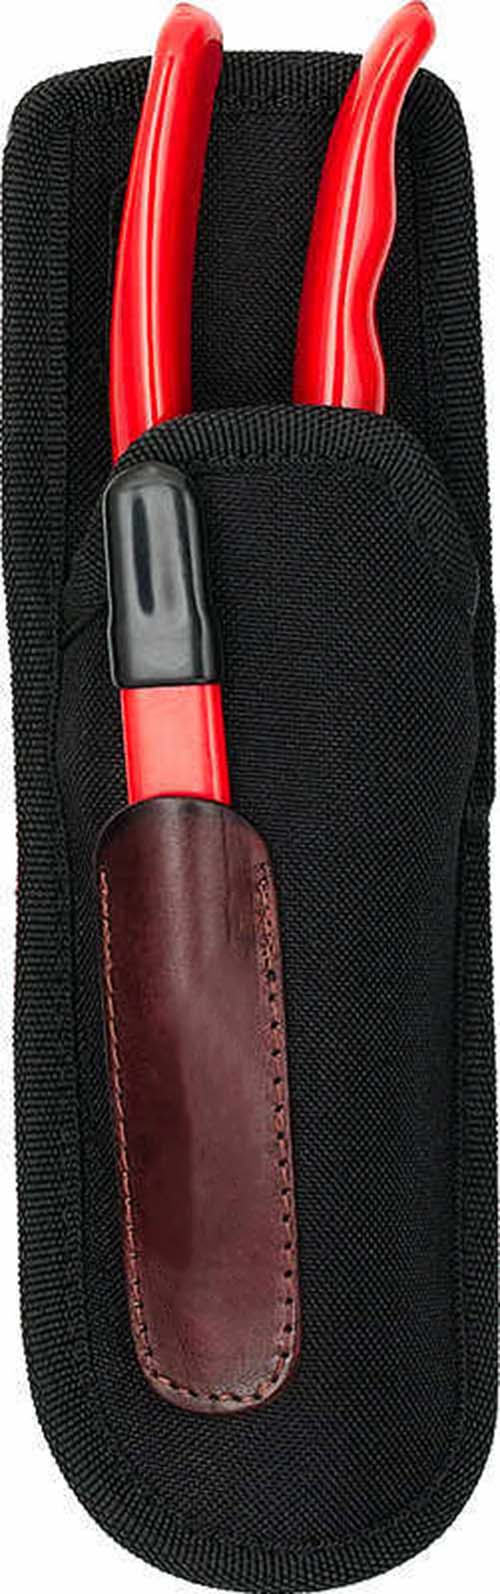 Zenport Universal Tool Pouch HJ249 with Sharpener Pocket